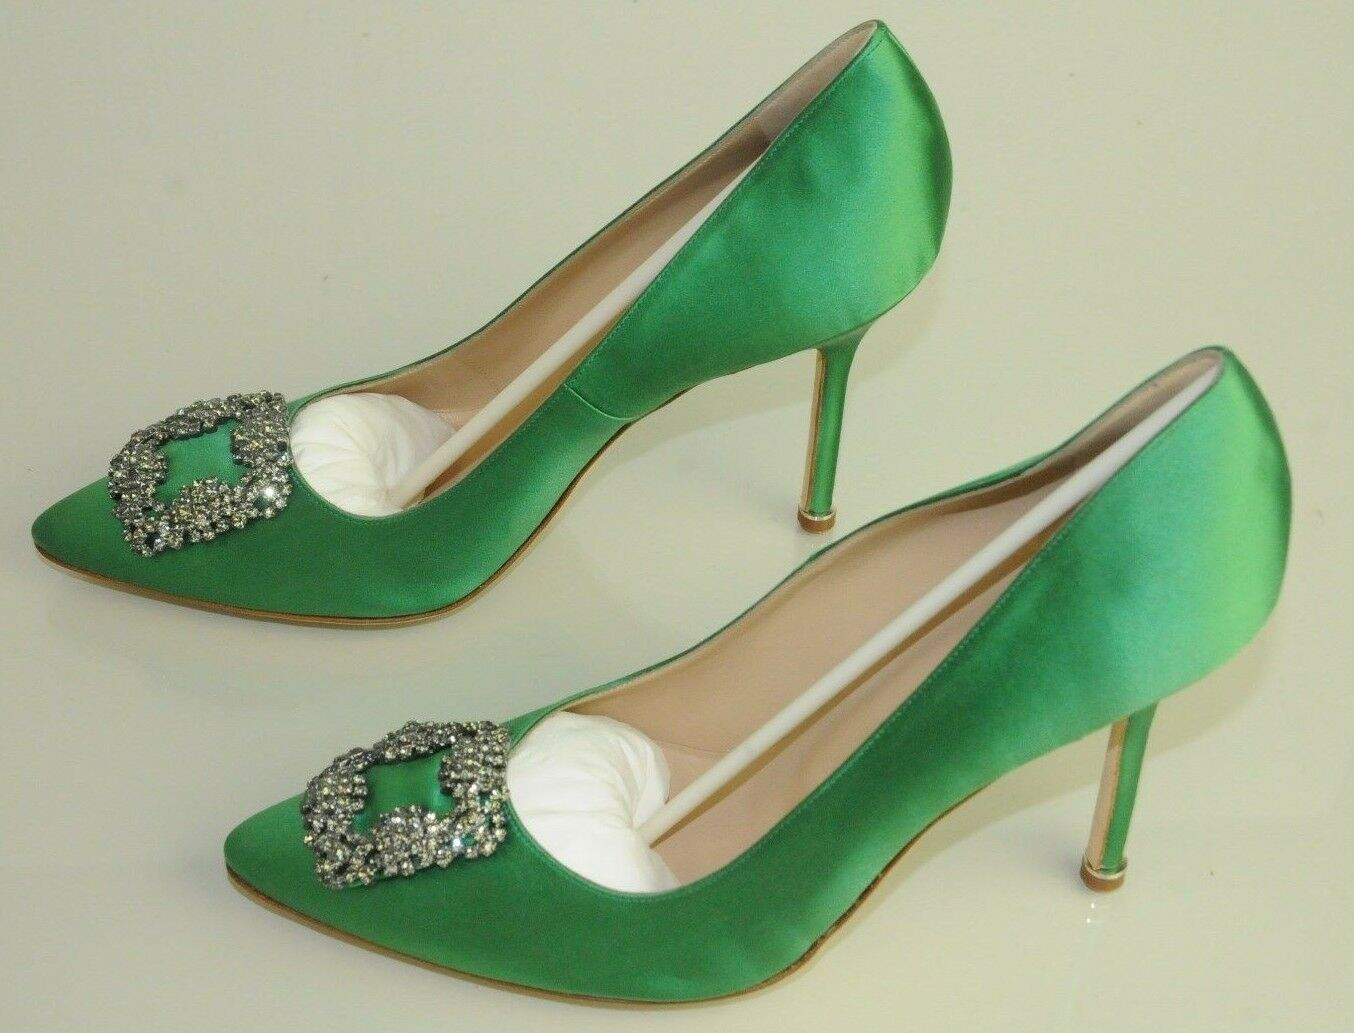 965 NEW MANOLO BLAHNIK HANGISI LIME GREEN Satin JEWELED Pumps SHOES 41 40.5 40